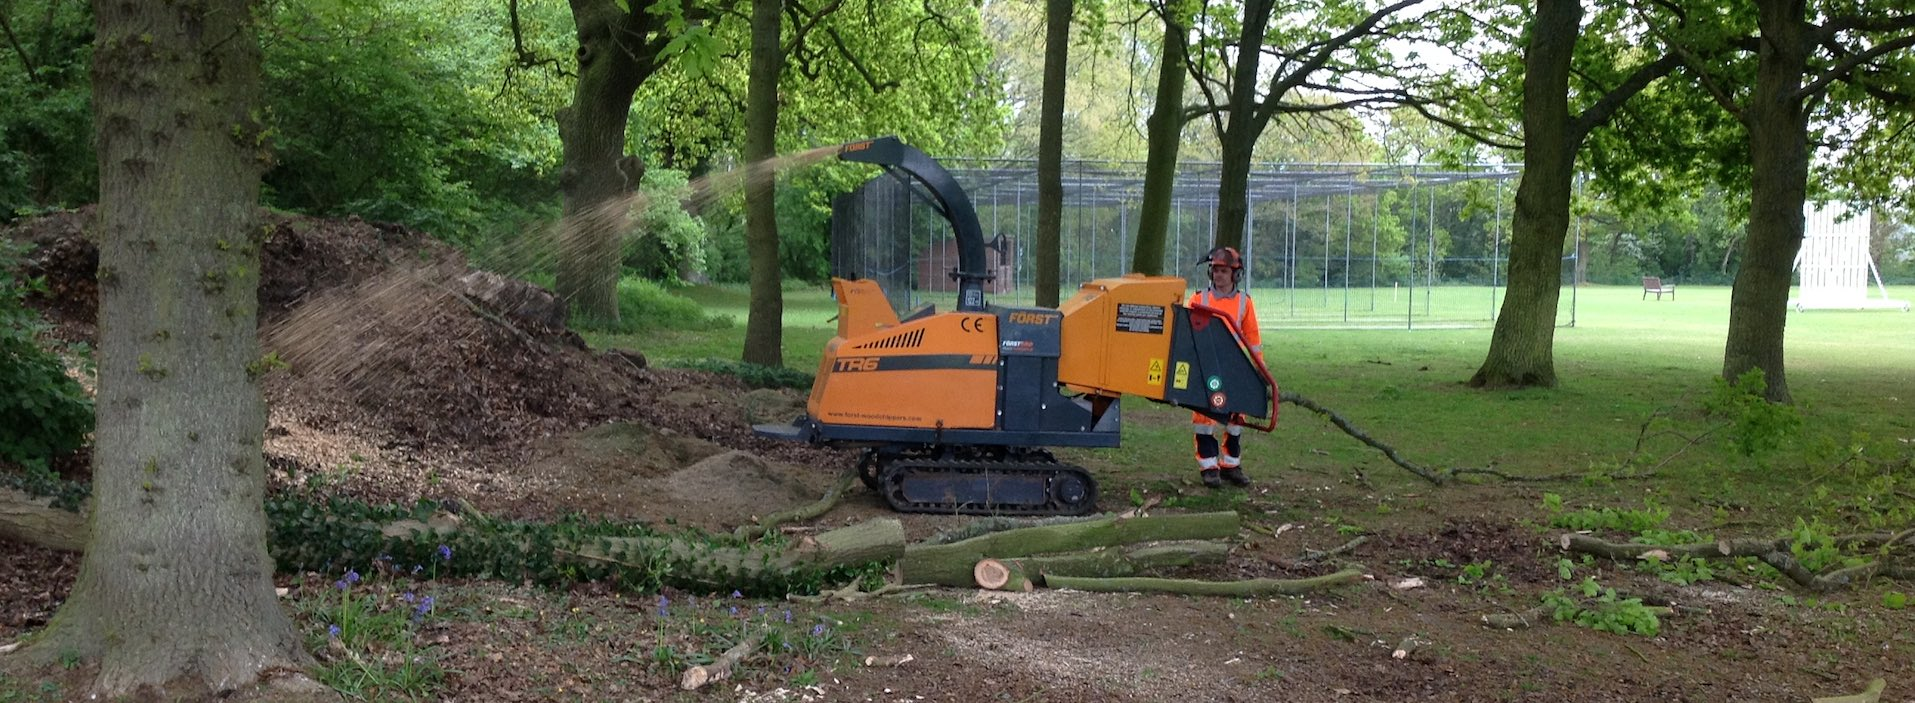 Digger Working on Tree